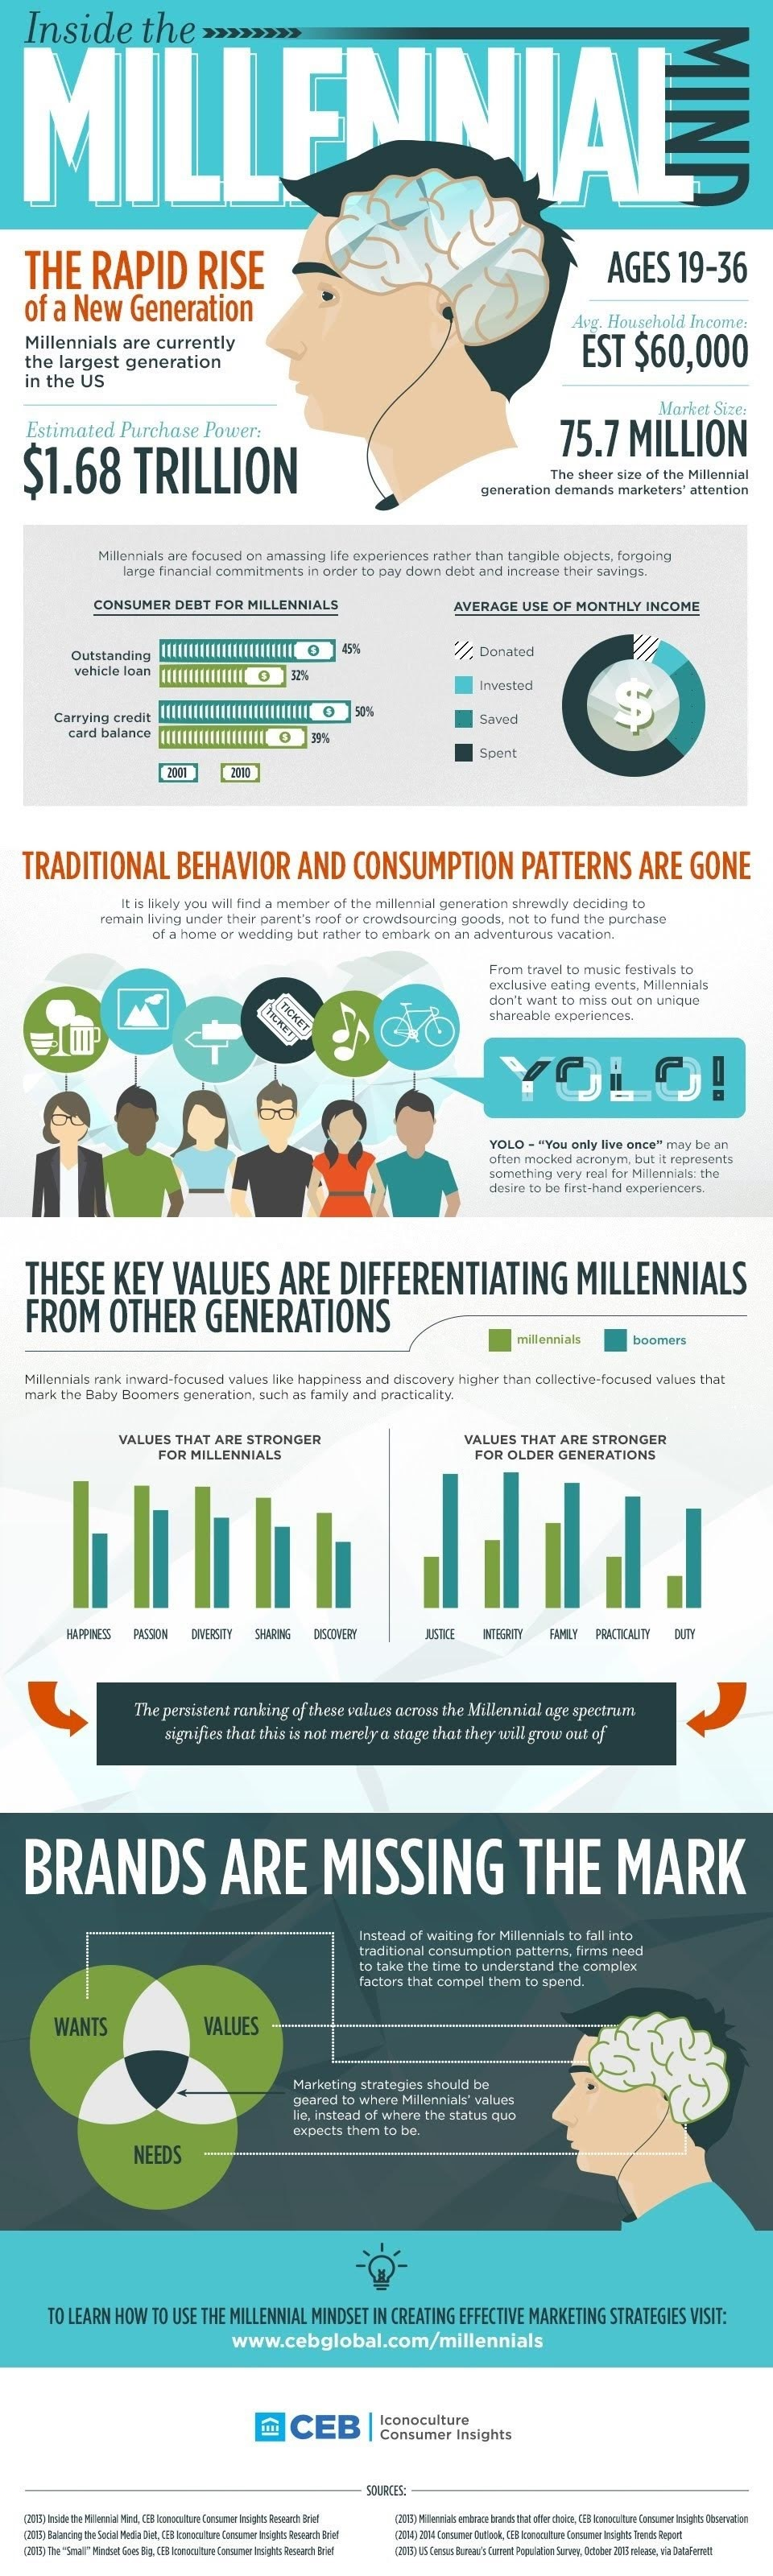 The new generation's fast rise within The Millennial Mind #infographic